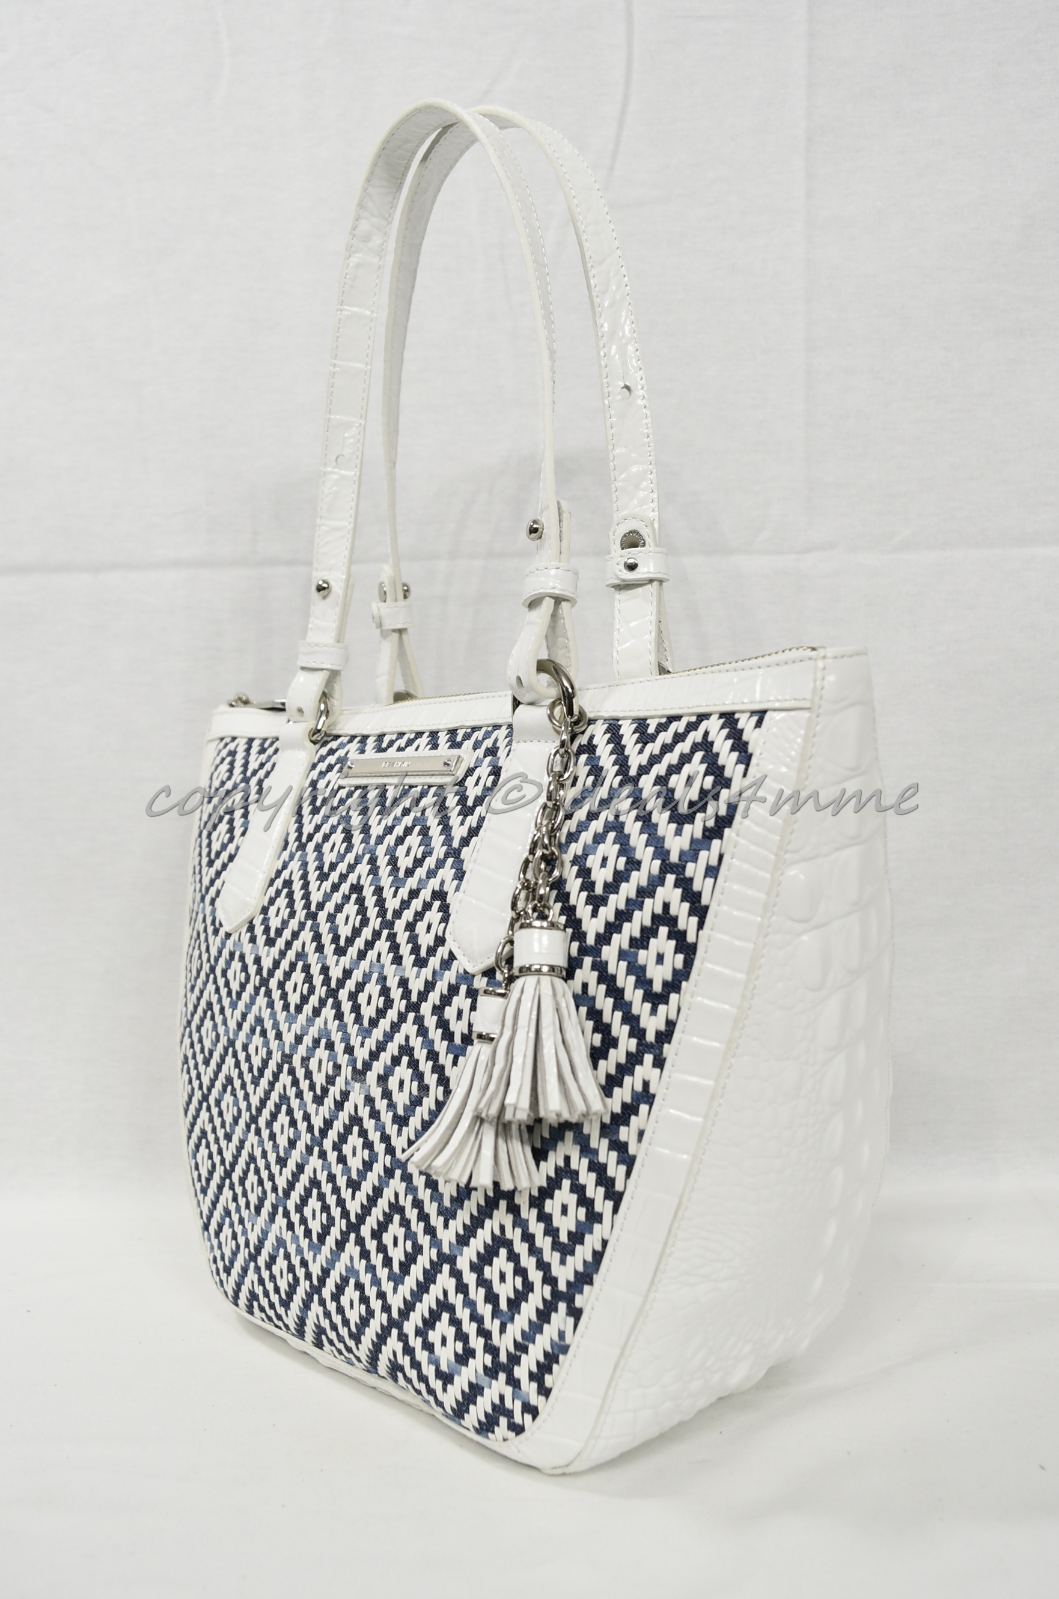 Primary image for NWT Brahmin Small Willa Tote/Shoulder Bag in Denim Royal Palm. White and Blue